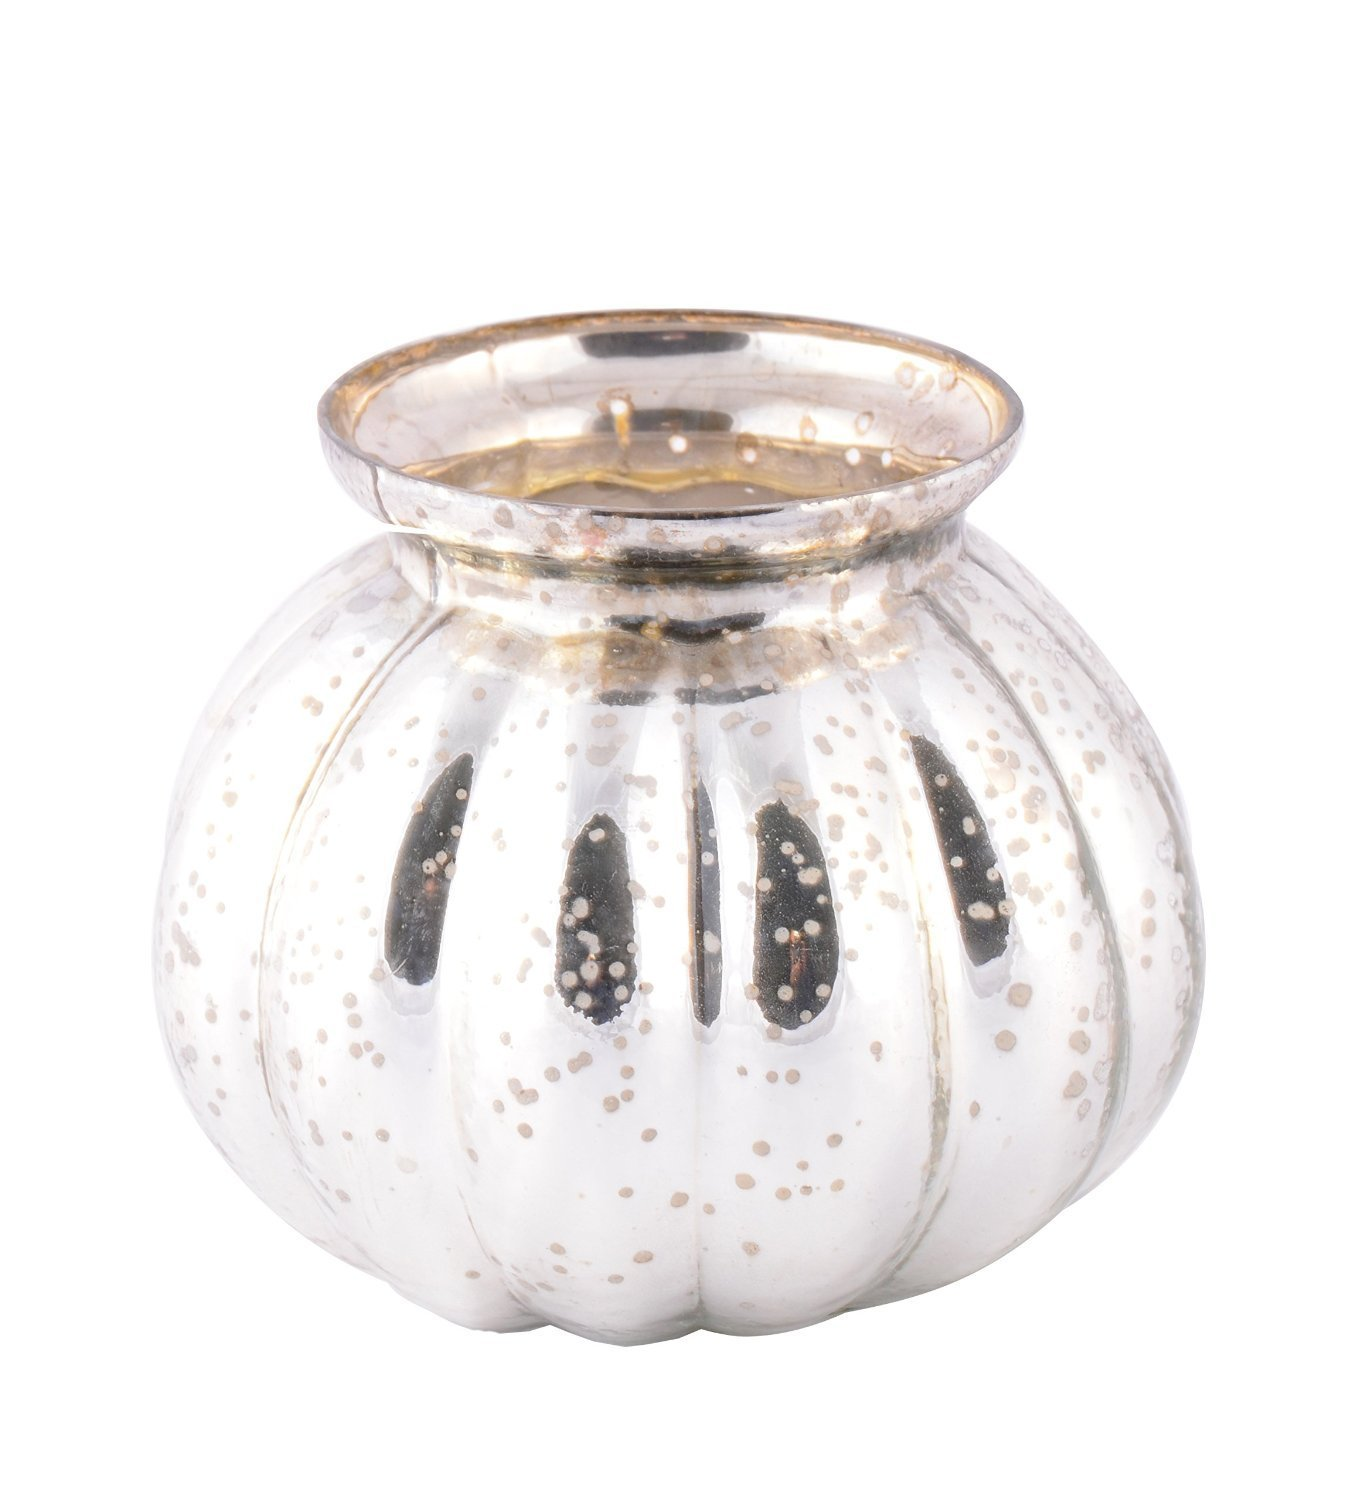 Silver Round Pot Style Antique Glass Tealight Votive Candle Holder Beautiful Evening Wedding Parties Home Décor Table Decoration or Gift by MystiqueDecors